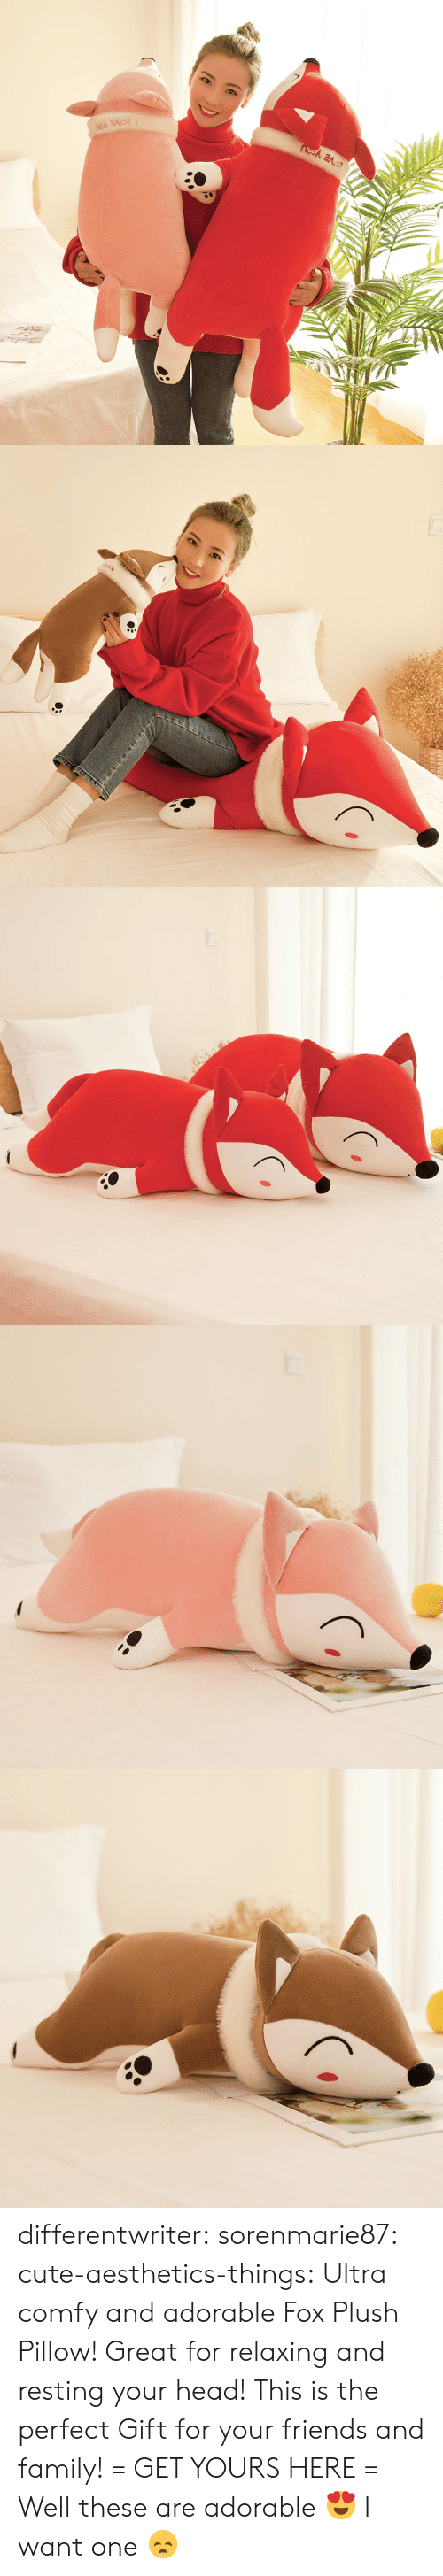 plush: differentwriter:  sorenmarie87:  cute-aesthetics-things:  Ultra comfy and adorable Fox Plush Pillow! Great for relaxing and resting your head! This is the perfect Gift for your friends and family! = GET YOURS HERE =   Well these are adorable 😍  I want one 😞